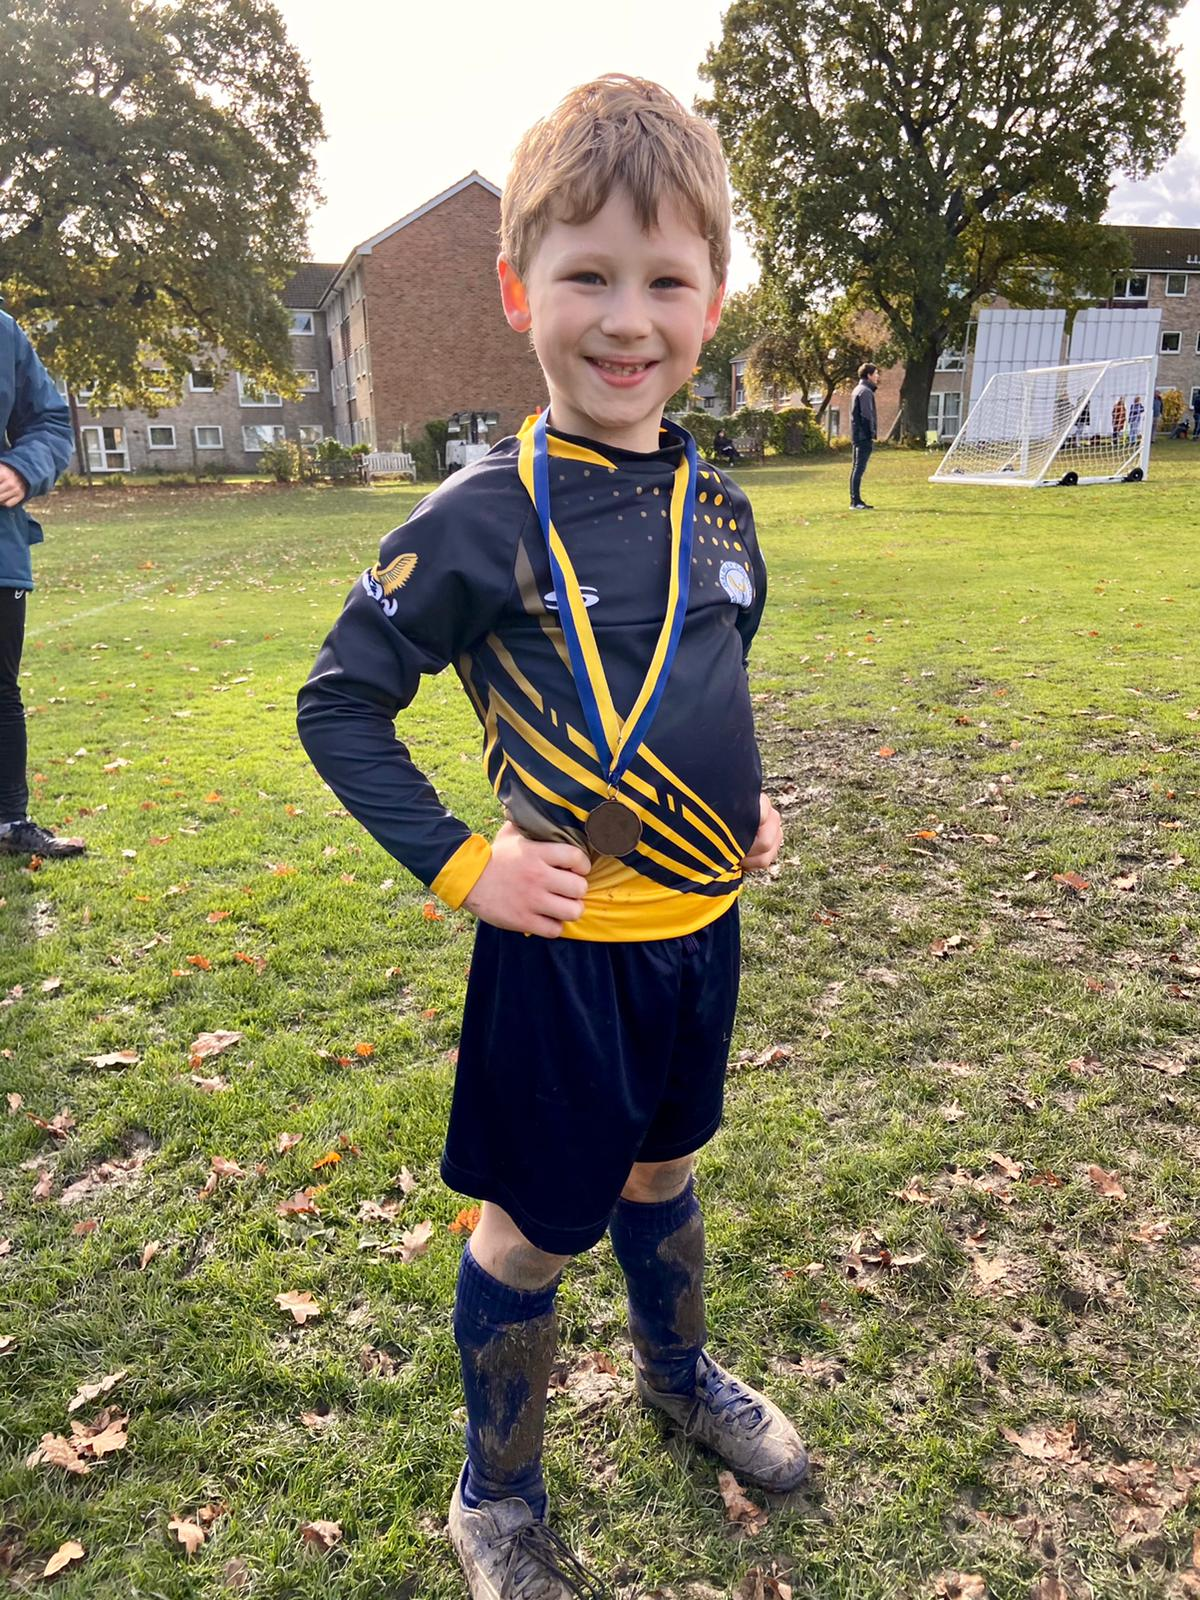 Hattrick for Ryan as Colron U7s Improve Week on Week